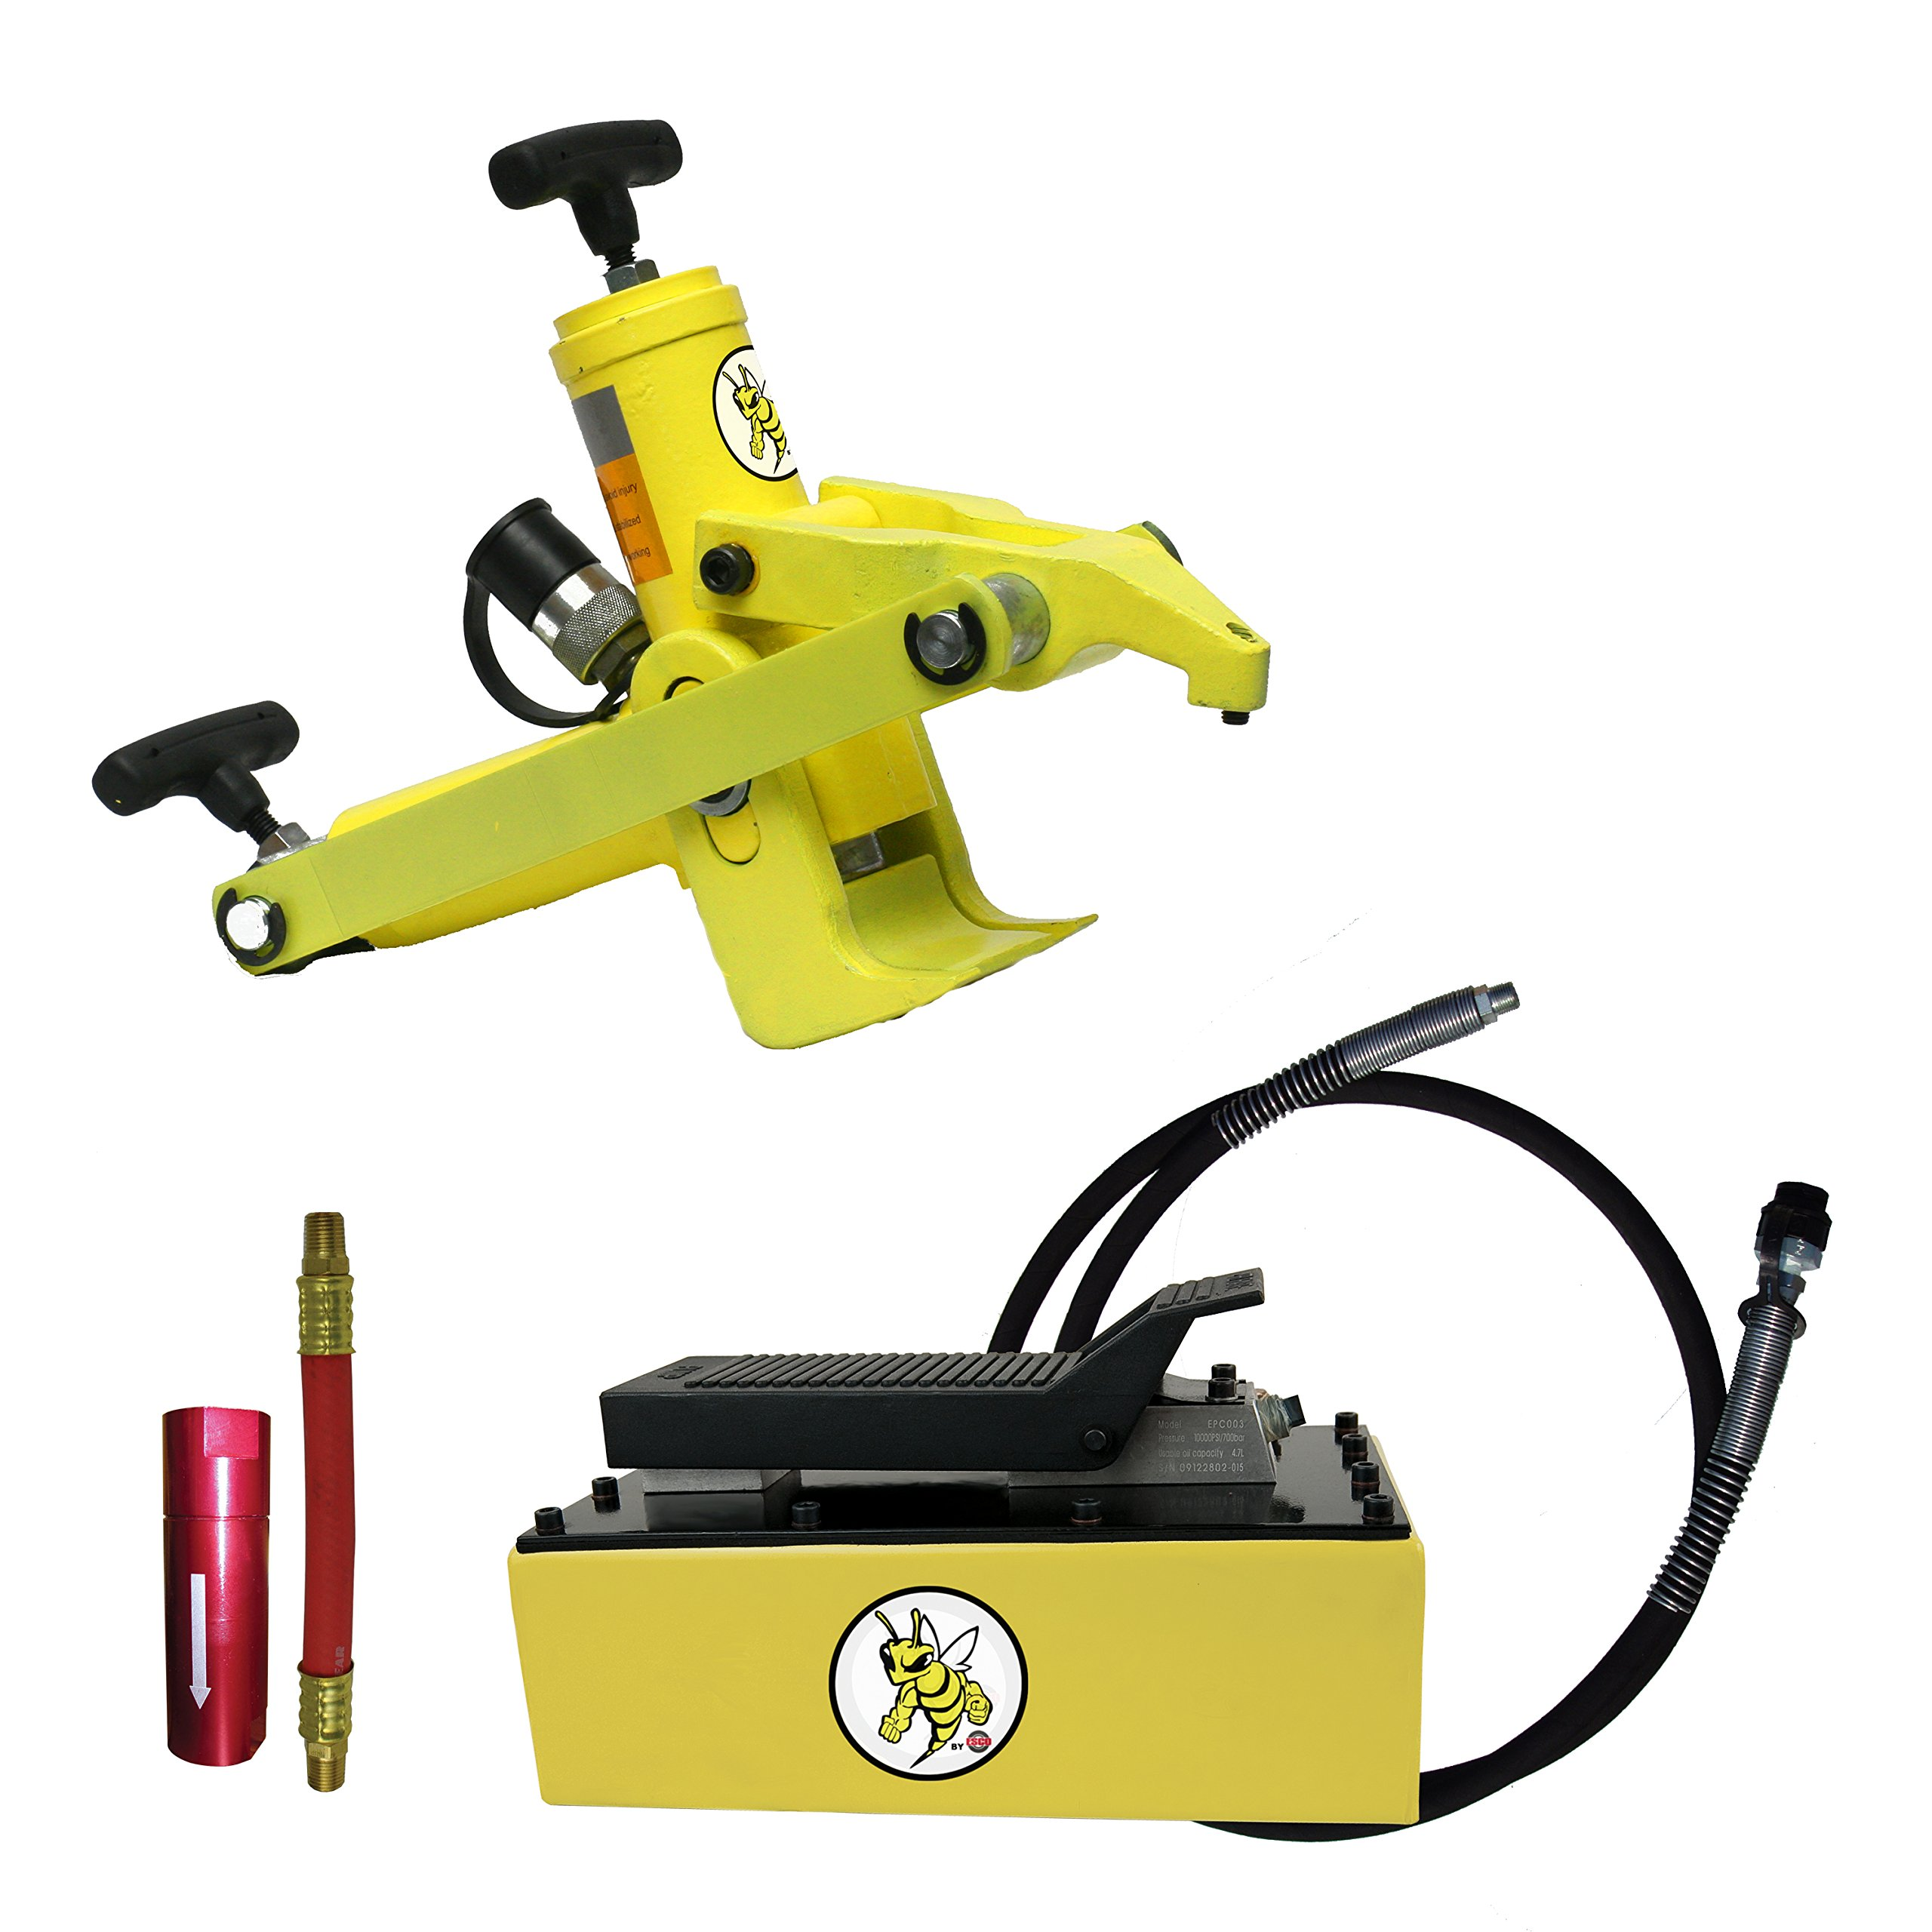 ESCO 10821 Yellow Jackit Economy Combi Style Bead Breaker Kit with Metal Pump by Esco (Image #1)